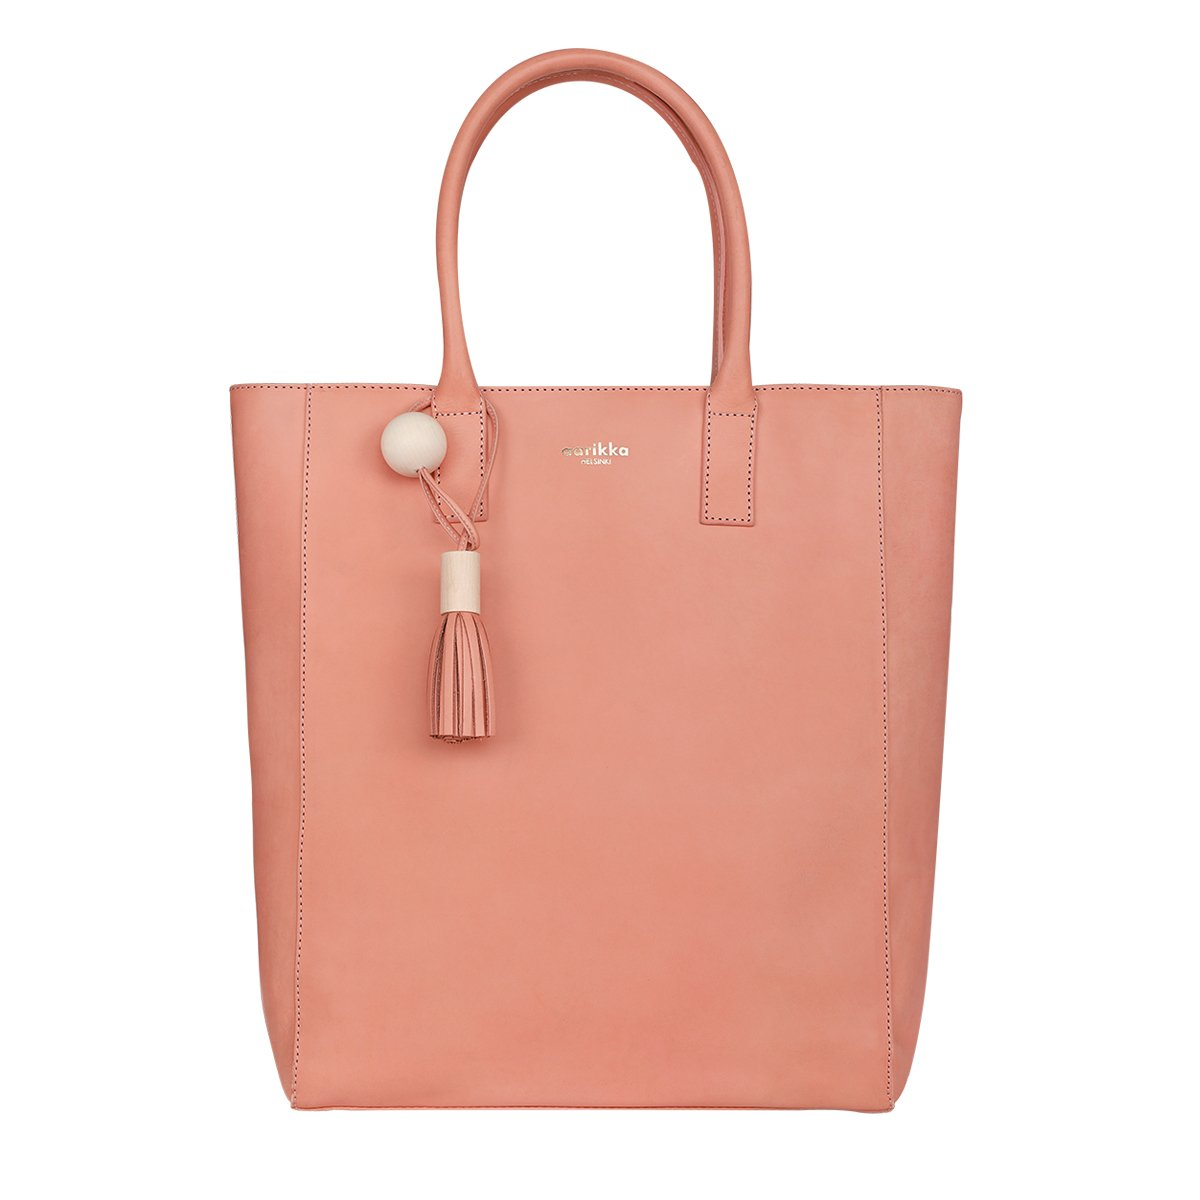 Aura shopper